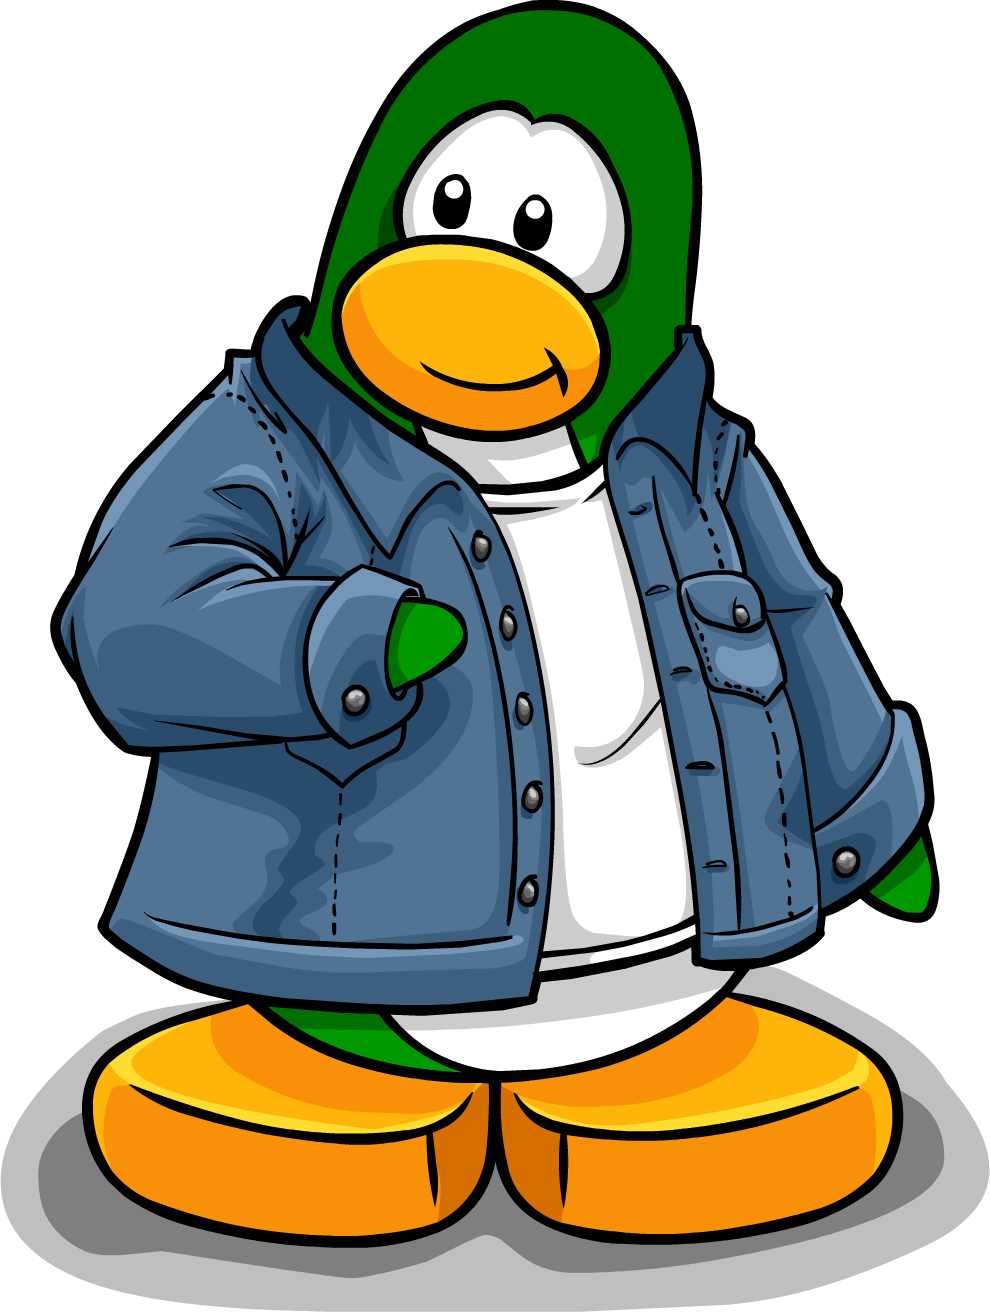 Image prnguin style march. Jacket clipart jeans jacket